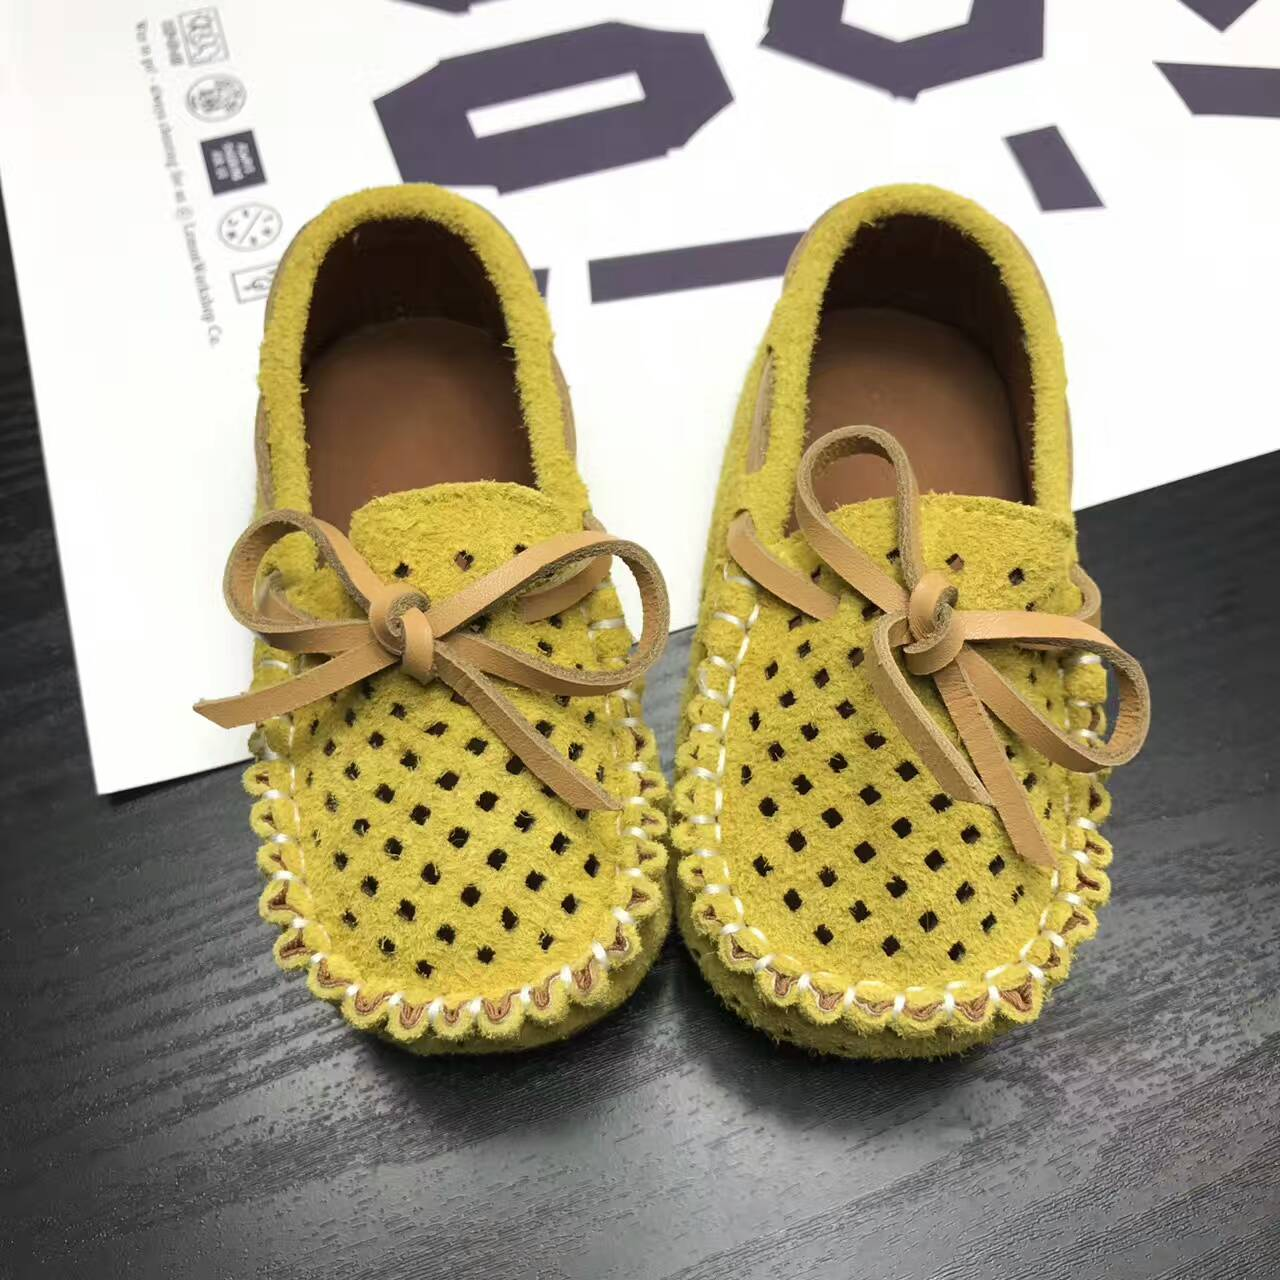 New Spring Autumn Children Shoes Kids Boys Shoes Leather Casual Baby Girls Sneaker With Bow Breathable Toddler Boy Shoes Loafers 2017 babyfeet spring and autumn children sneakers baby girls child toddler shoes breathable fashion pu leather boys sports shoes